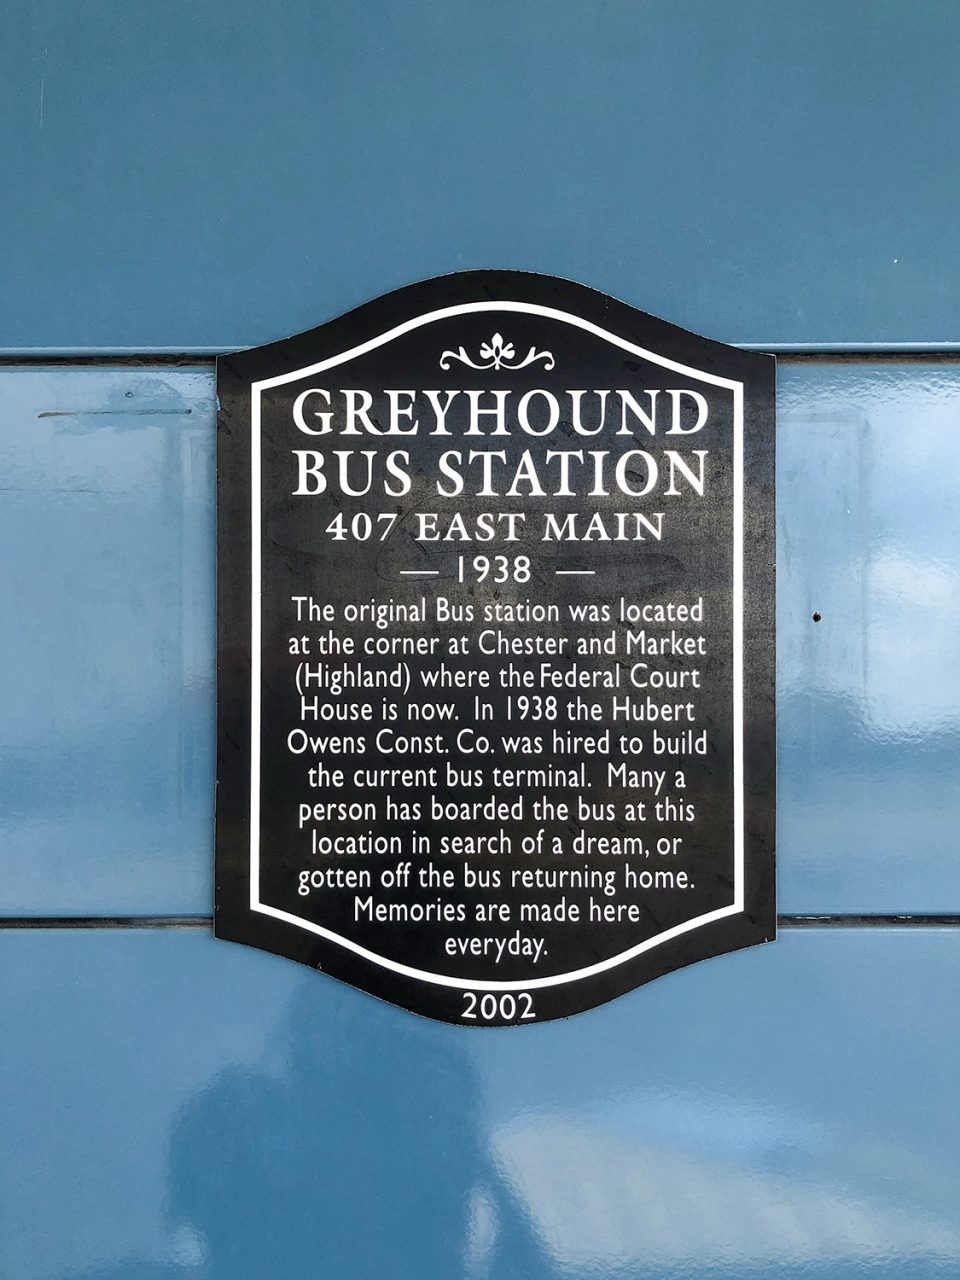 Sign giving historical context of the 1938 Greyhound station in Jackson, Tennessee